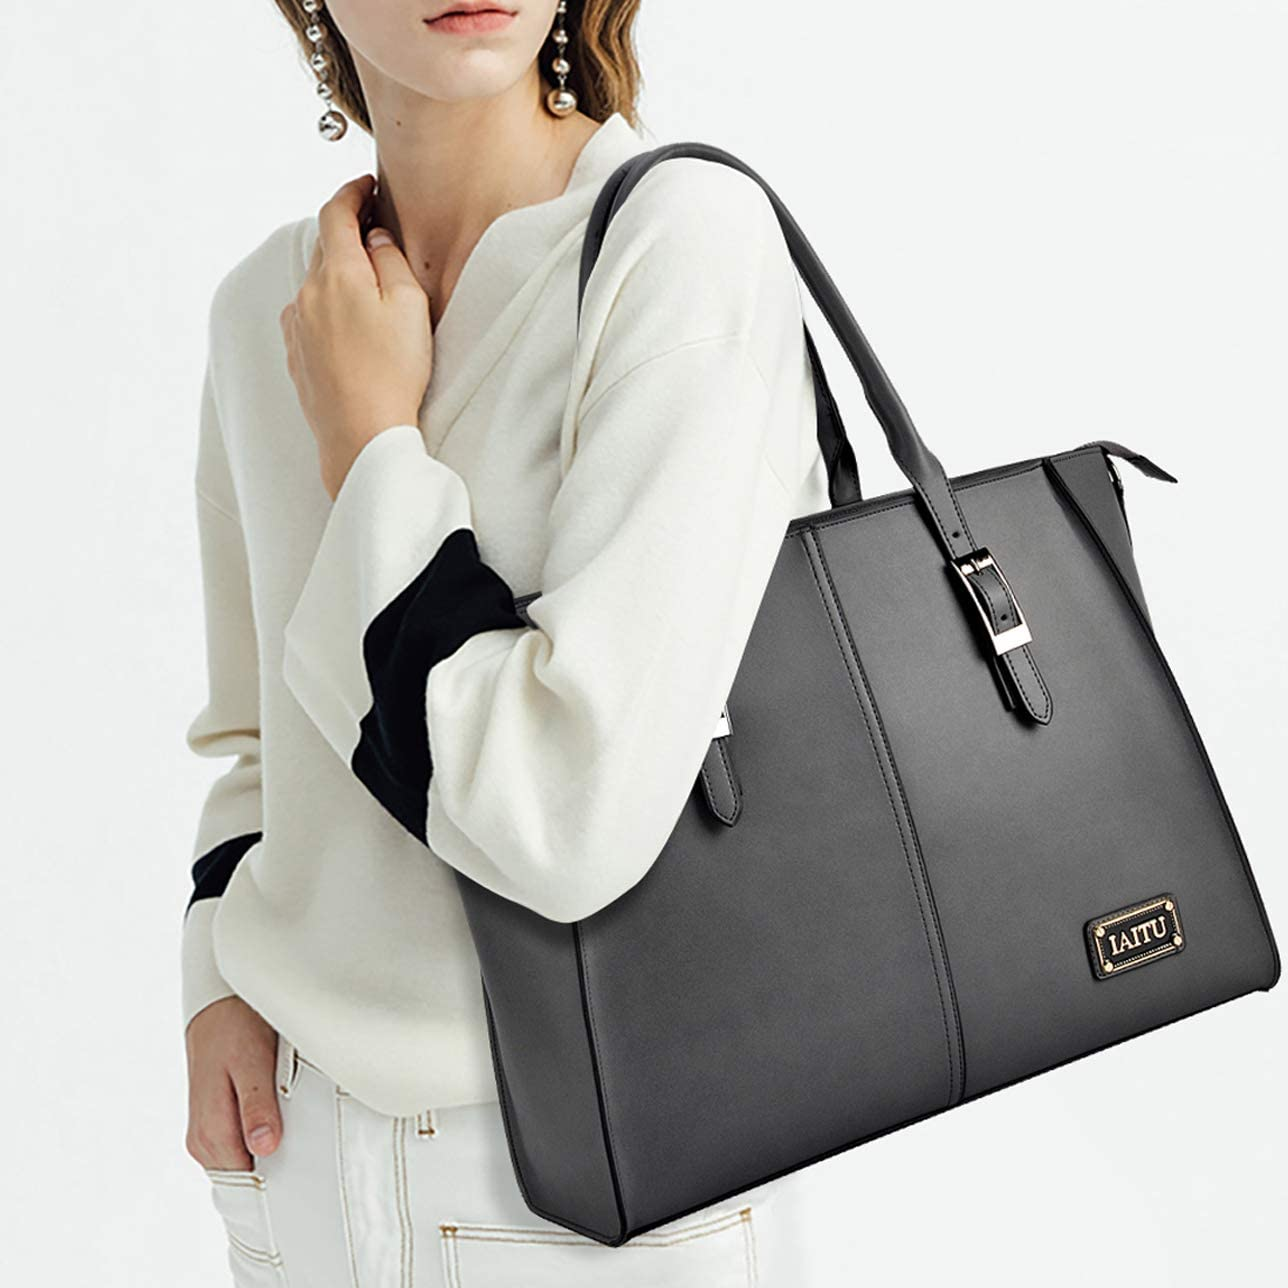 Black Best Laptop Bag for Women,15.6 Inch Computer bag Large Work Tote Bags Briefcase for Women